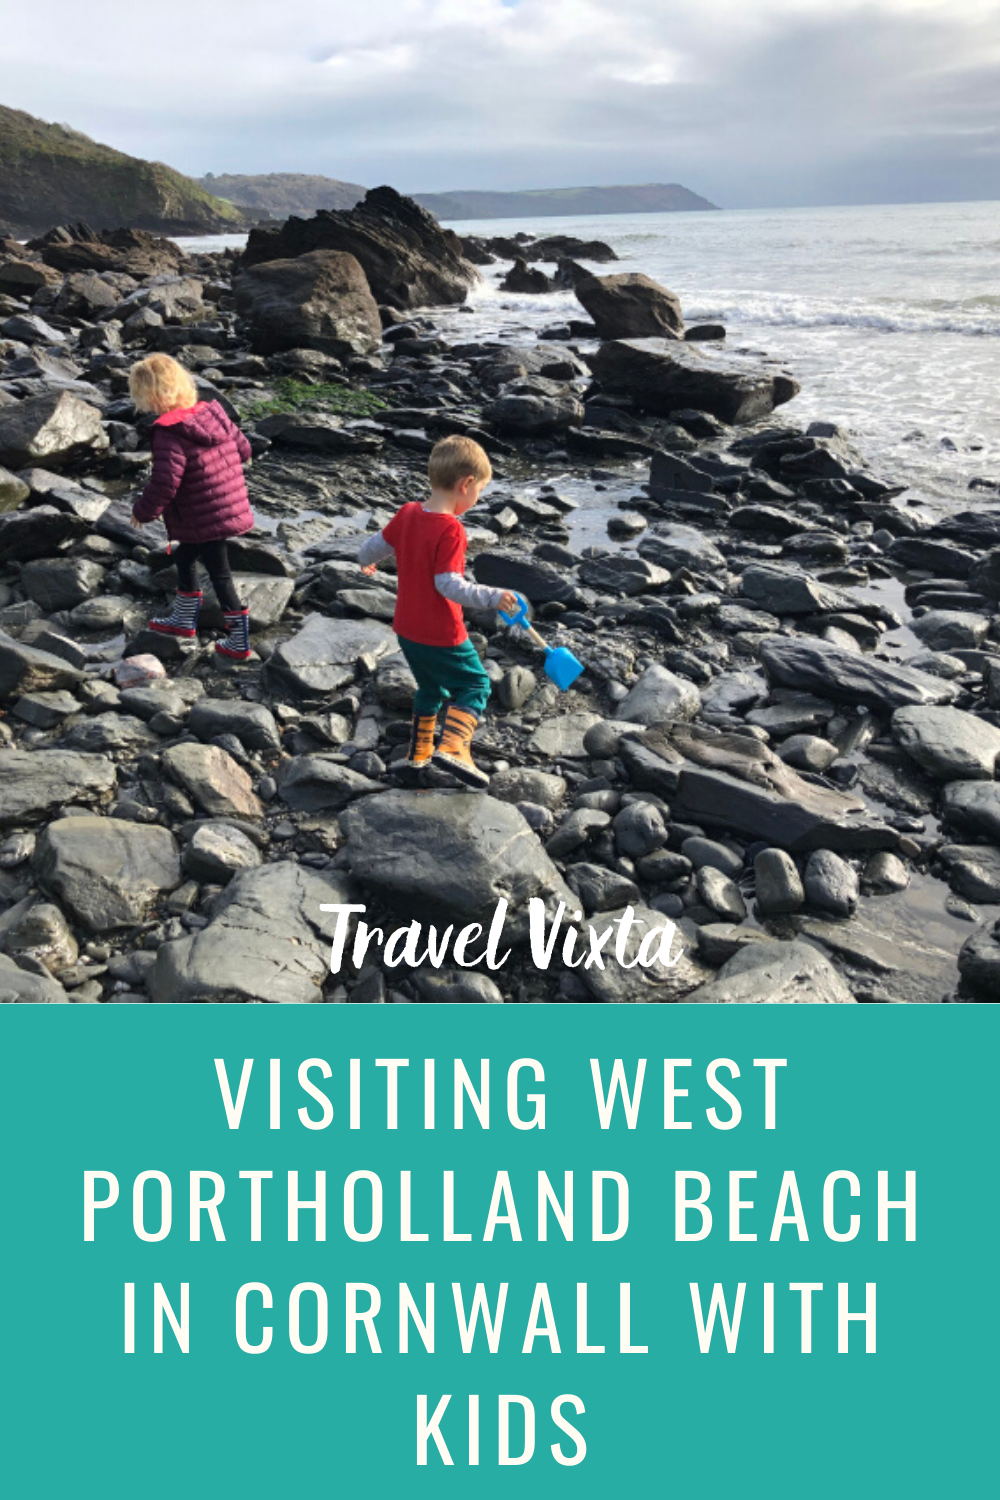 Visiting West Portholland beach in Cornwall with kids